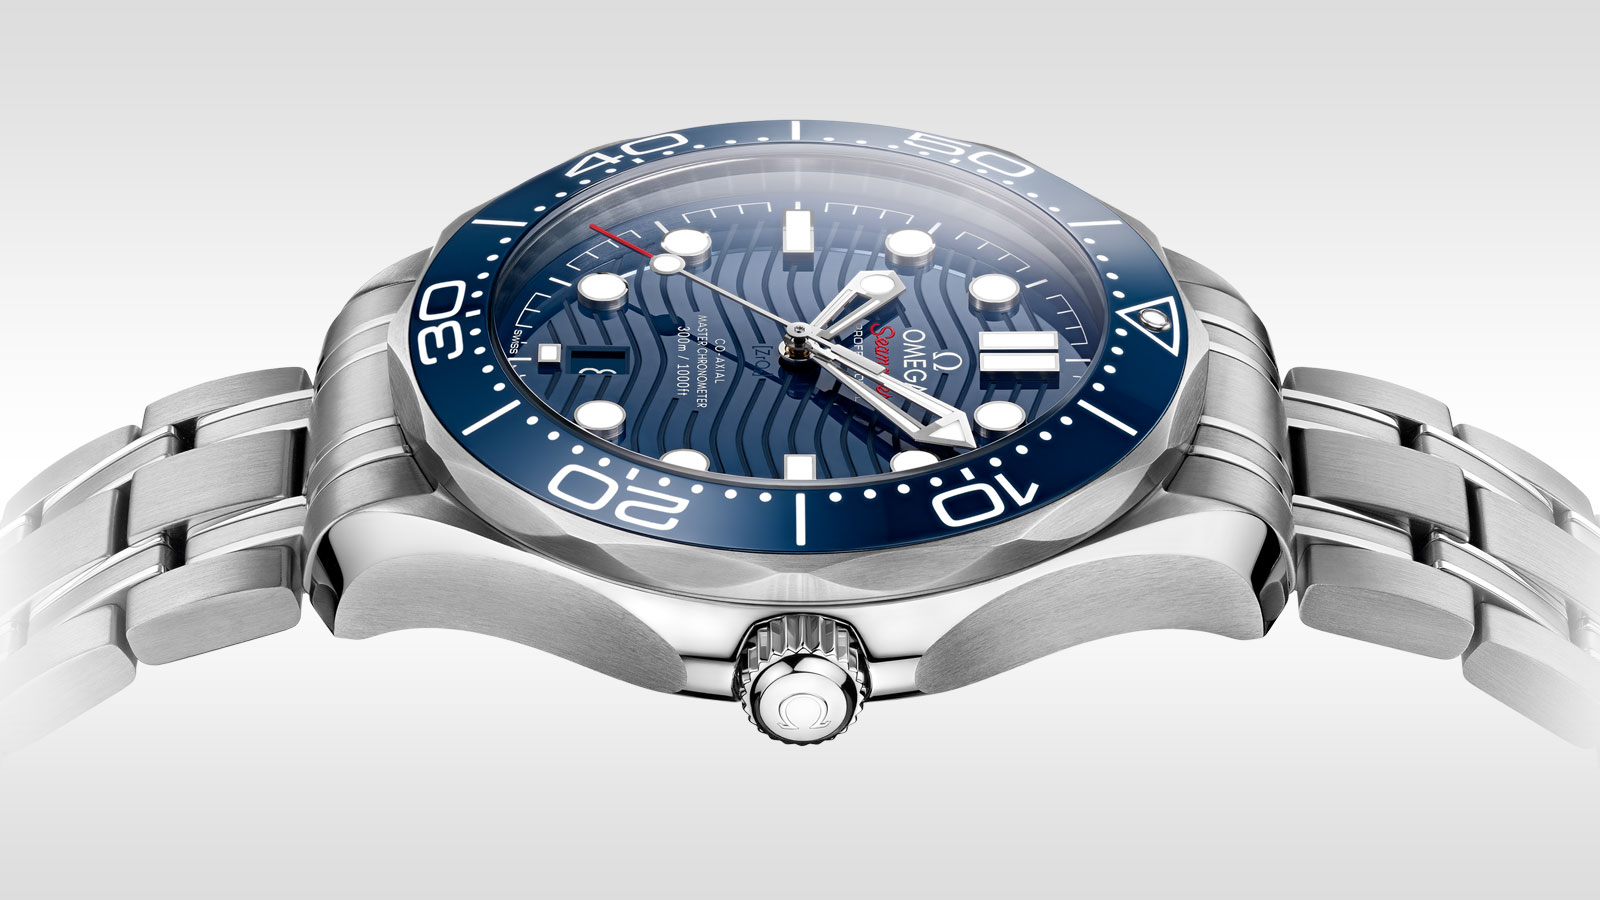 Seamaster Diver 300M Diver 300M Omega Co‑Axial Master Chronometer 42 mm - 210.30.42.20.03.001 - Vista 2